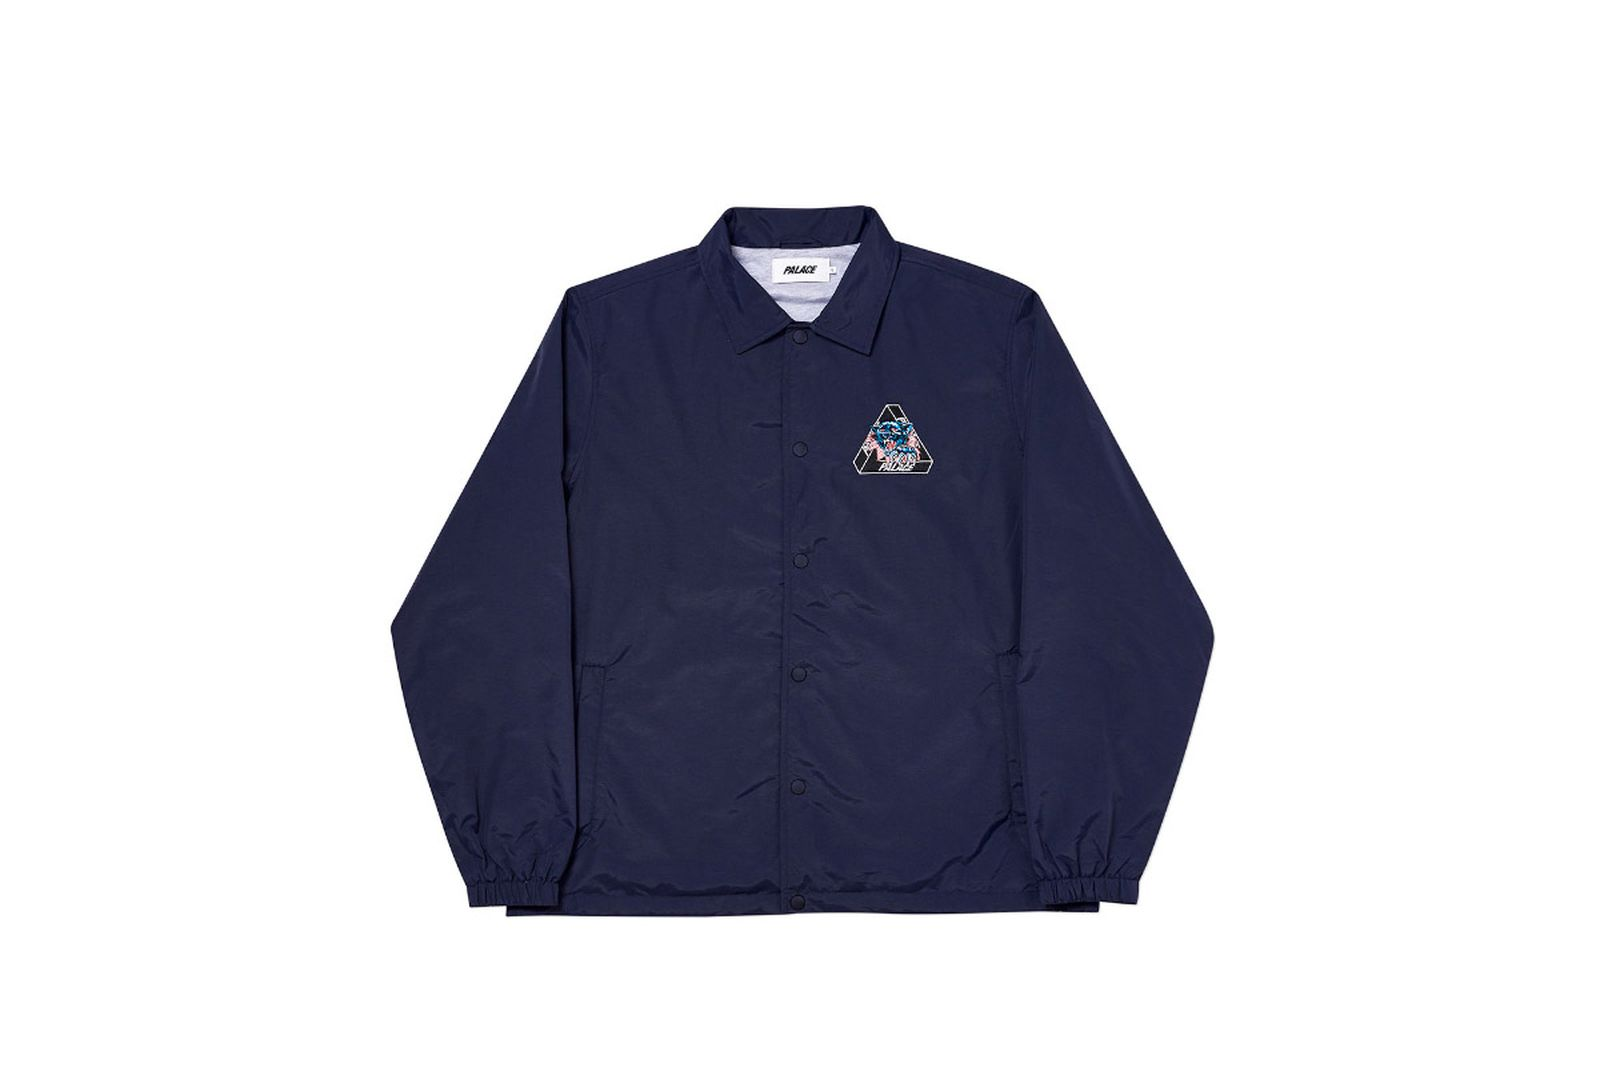 Palace 2019 Autumn Jacket Ripped Coach navy front fw19